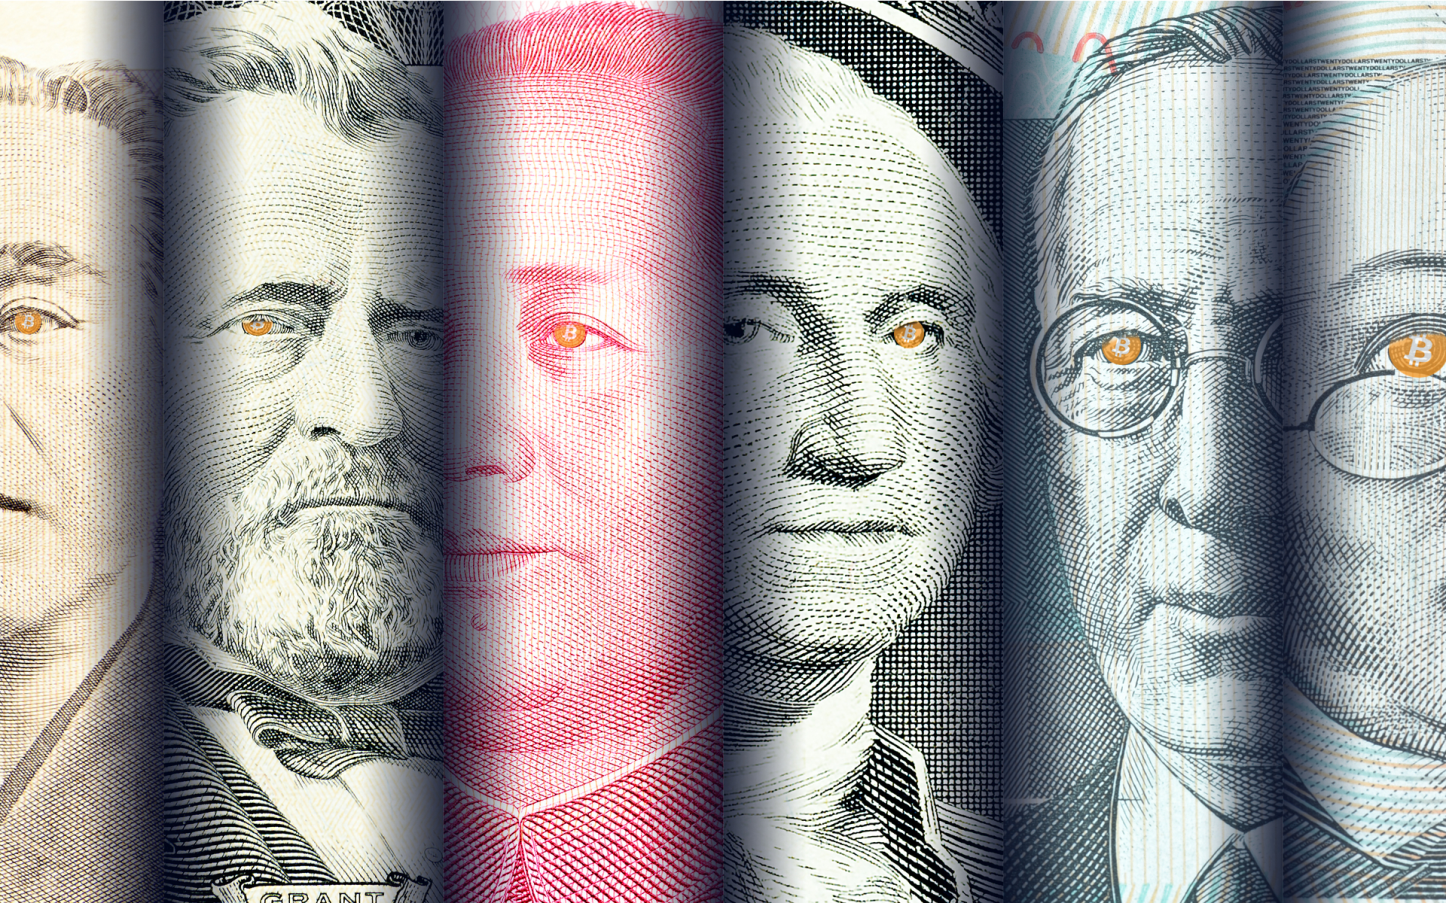 In the mind of central bankers… to create their Bitcoin